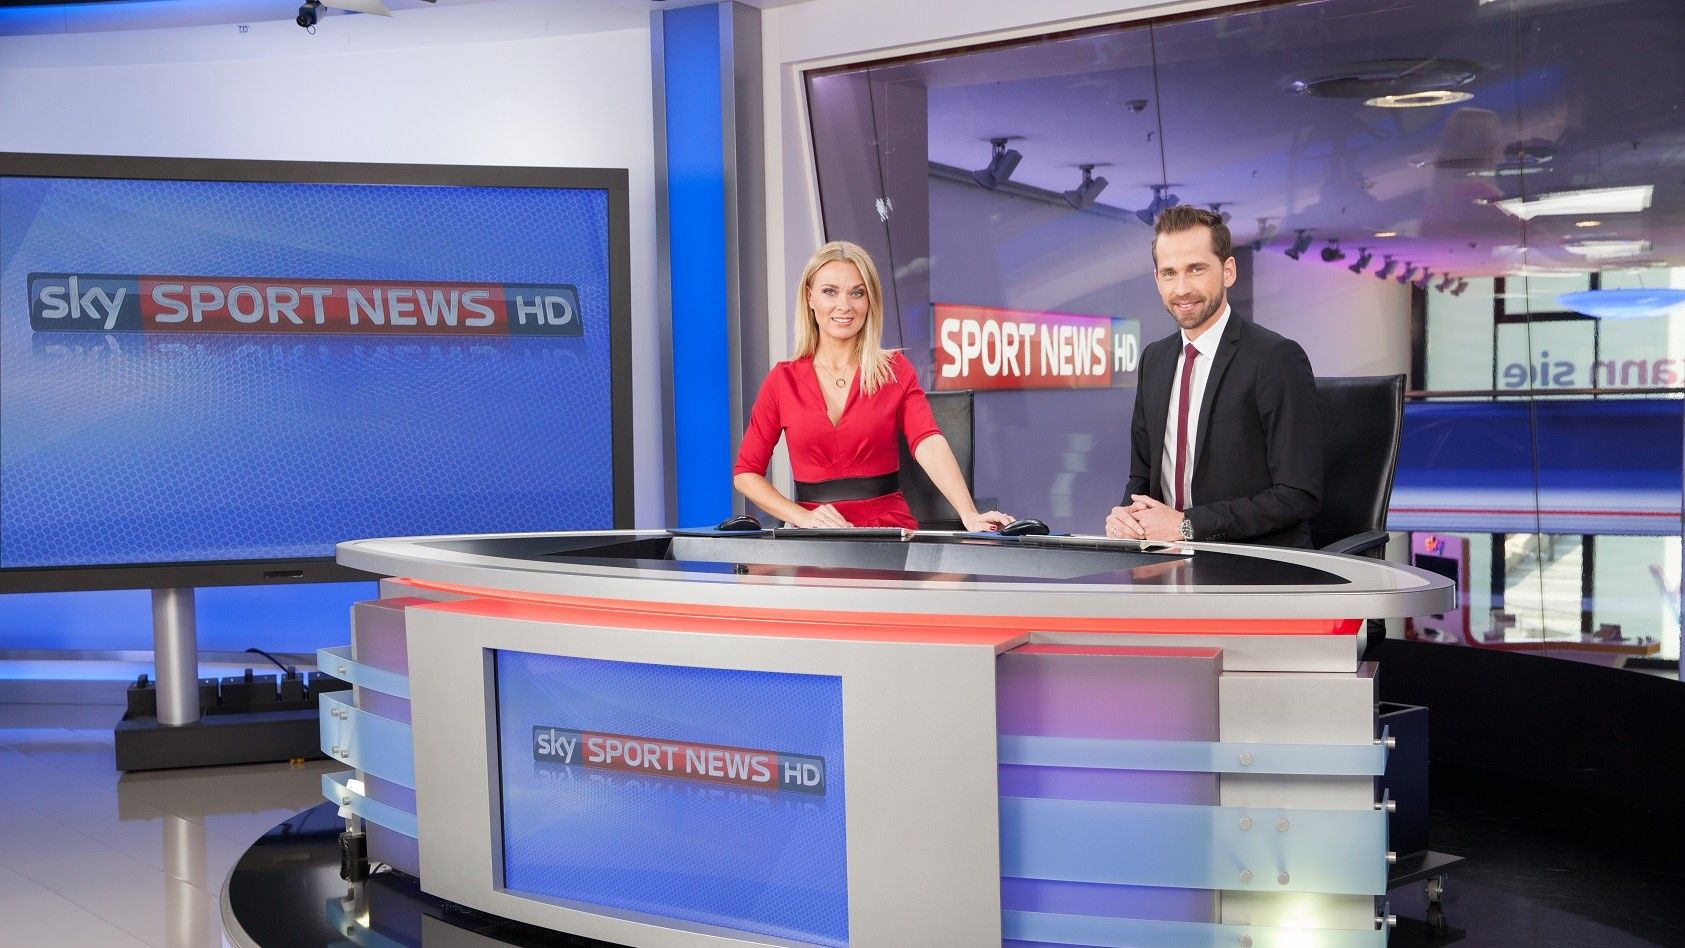 Sky-Sport-News-HD-173711.jpeg